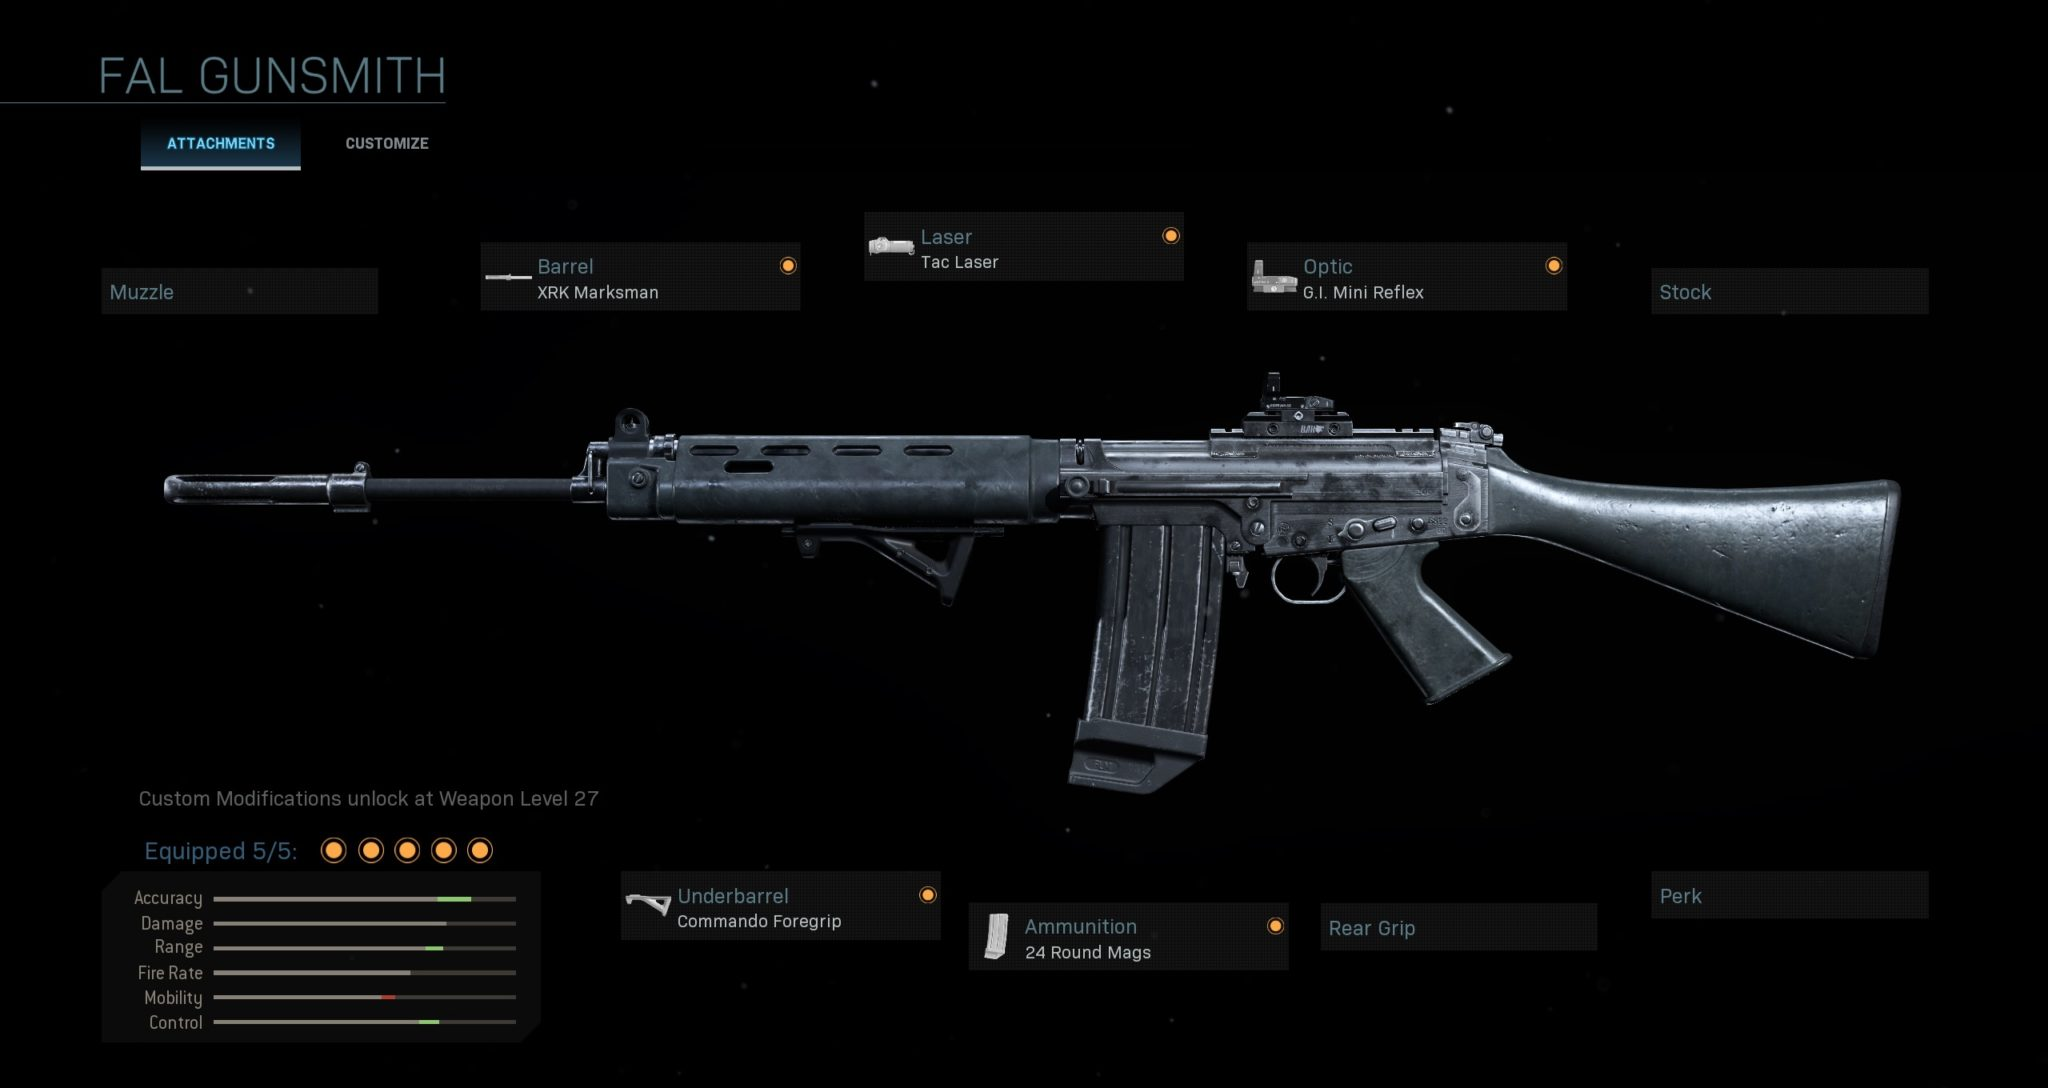 FAL multiplayer loadout